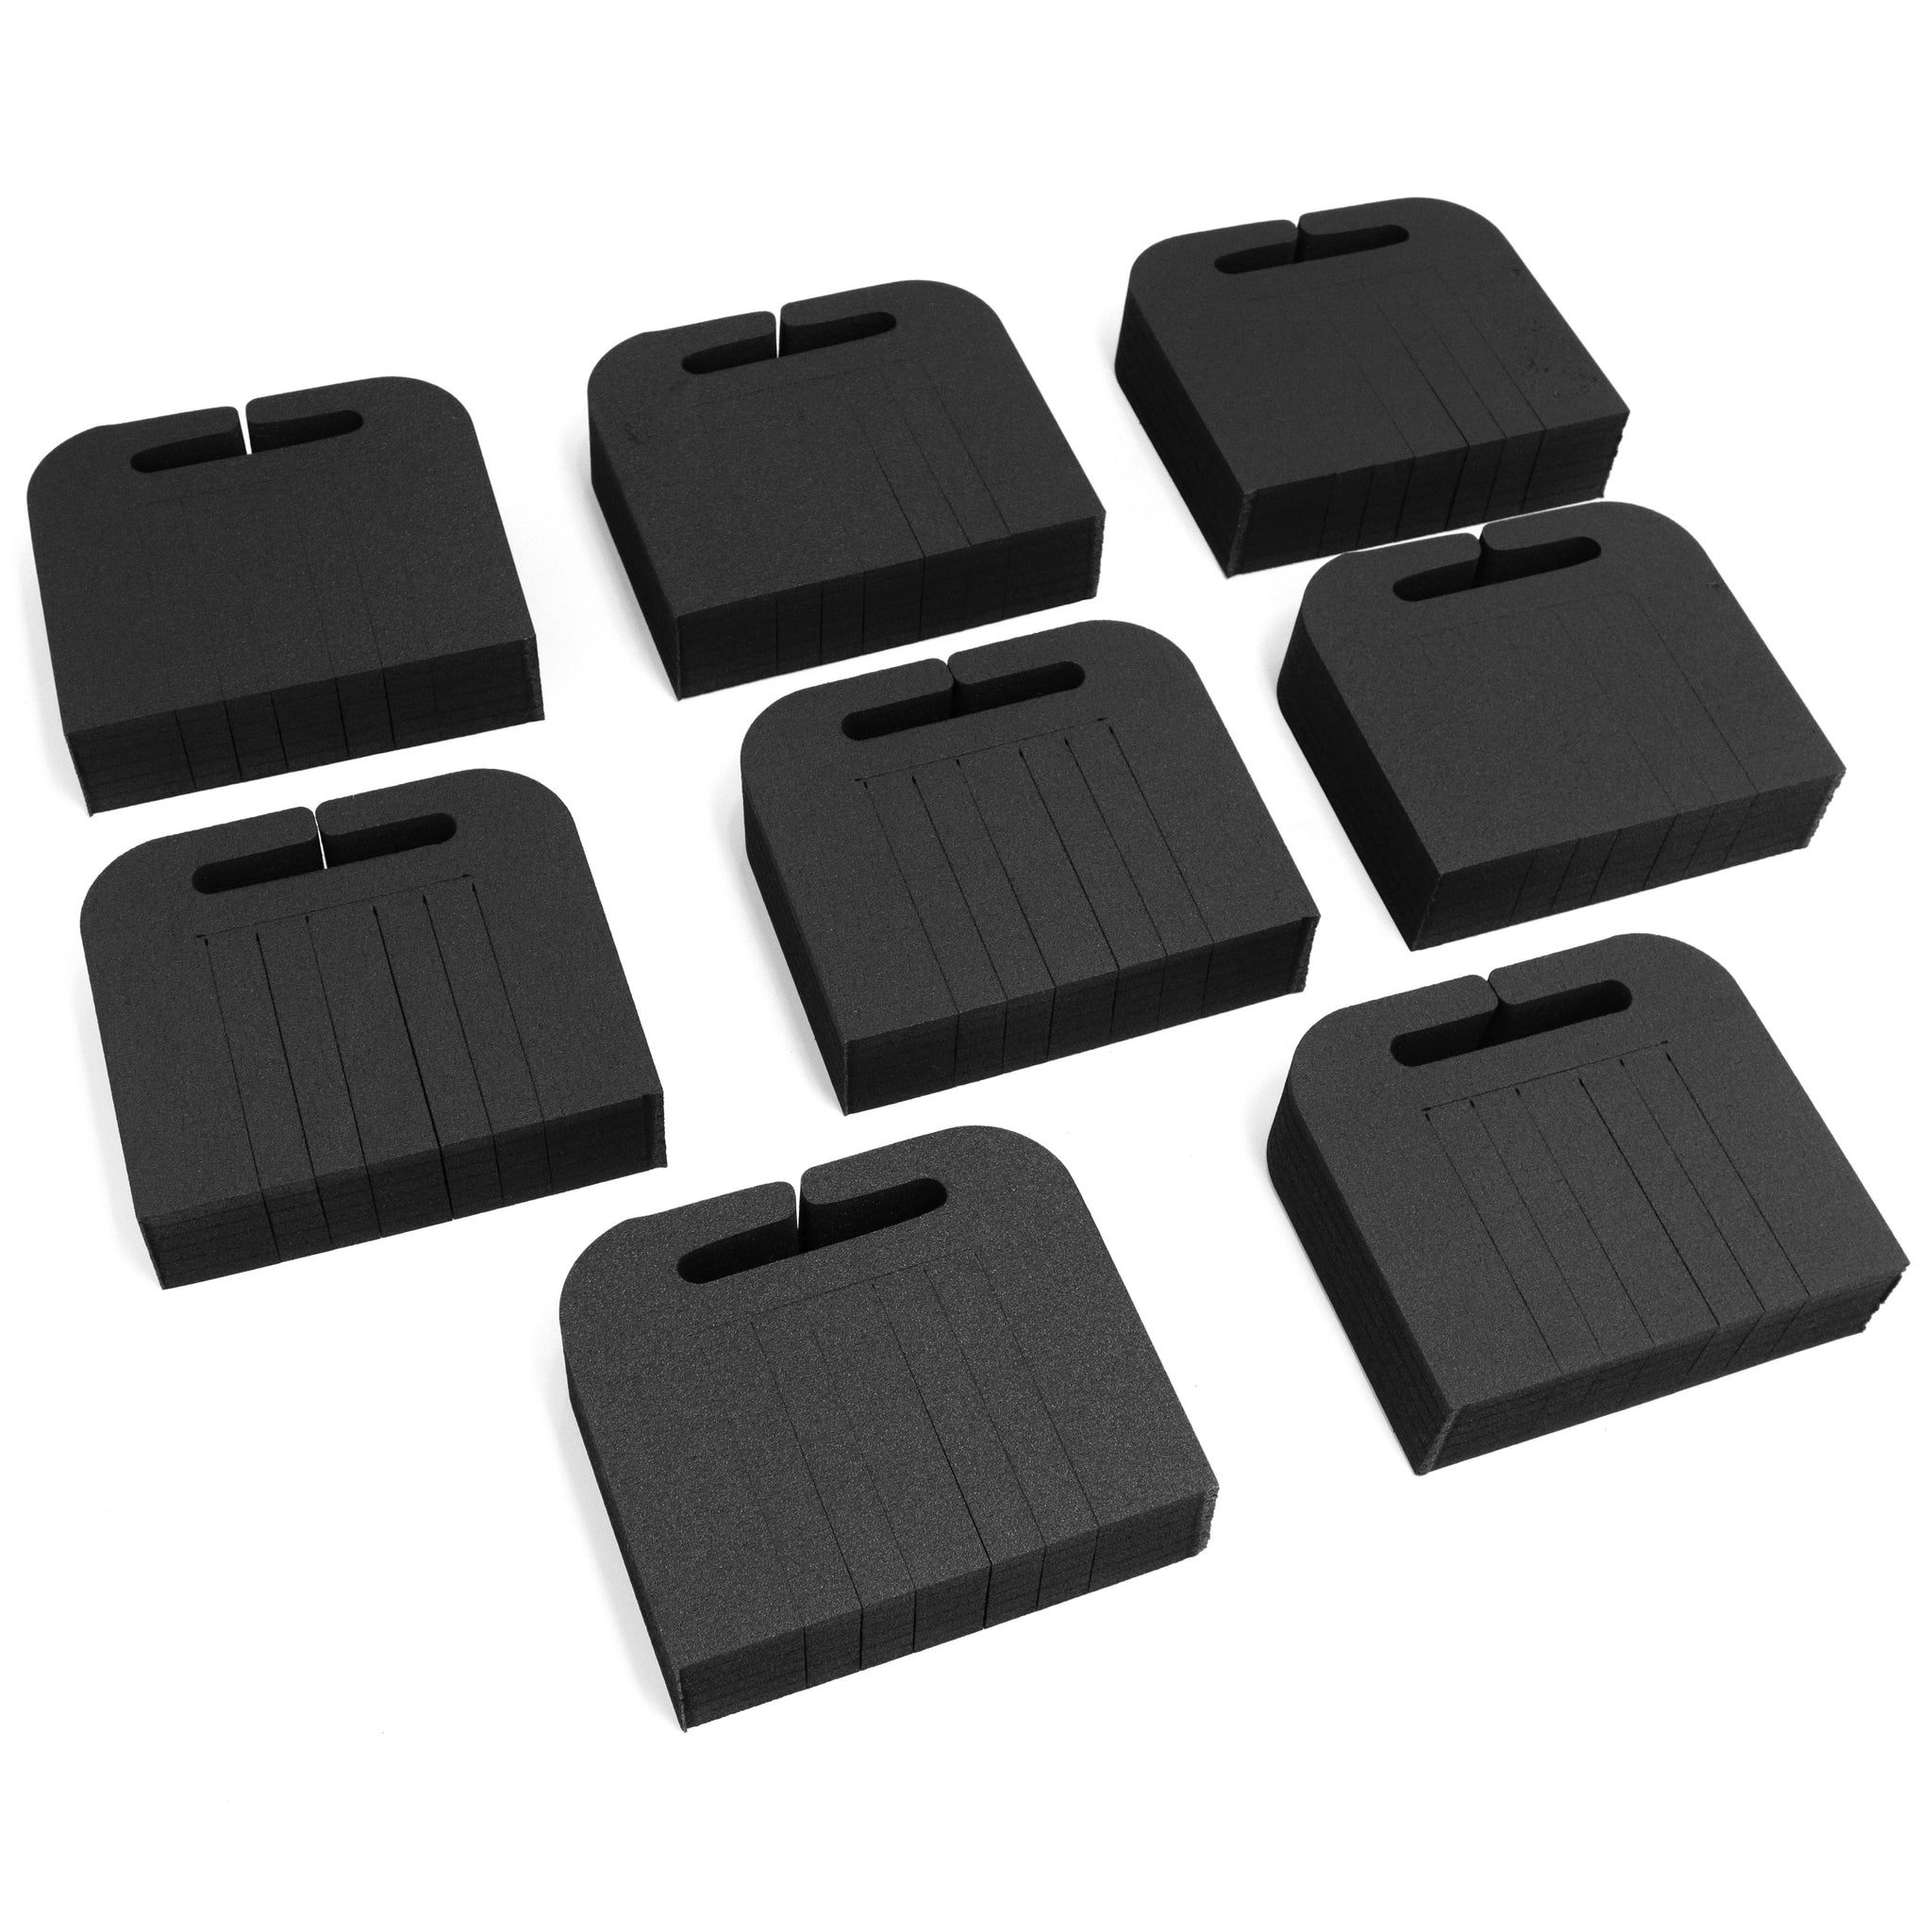 Polar Whale Tv Edge Protectors Set 7.5 By 6.5 Inches Professional Grade with Cargo Slot for Boxing Moving Shipping Transport Black High Density Foam Monitor Laptop Reusable Secure Fit Pack of 8